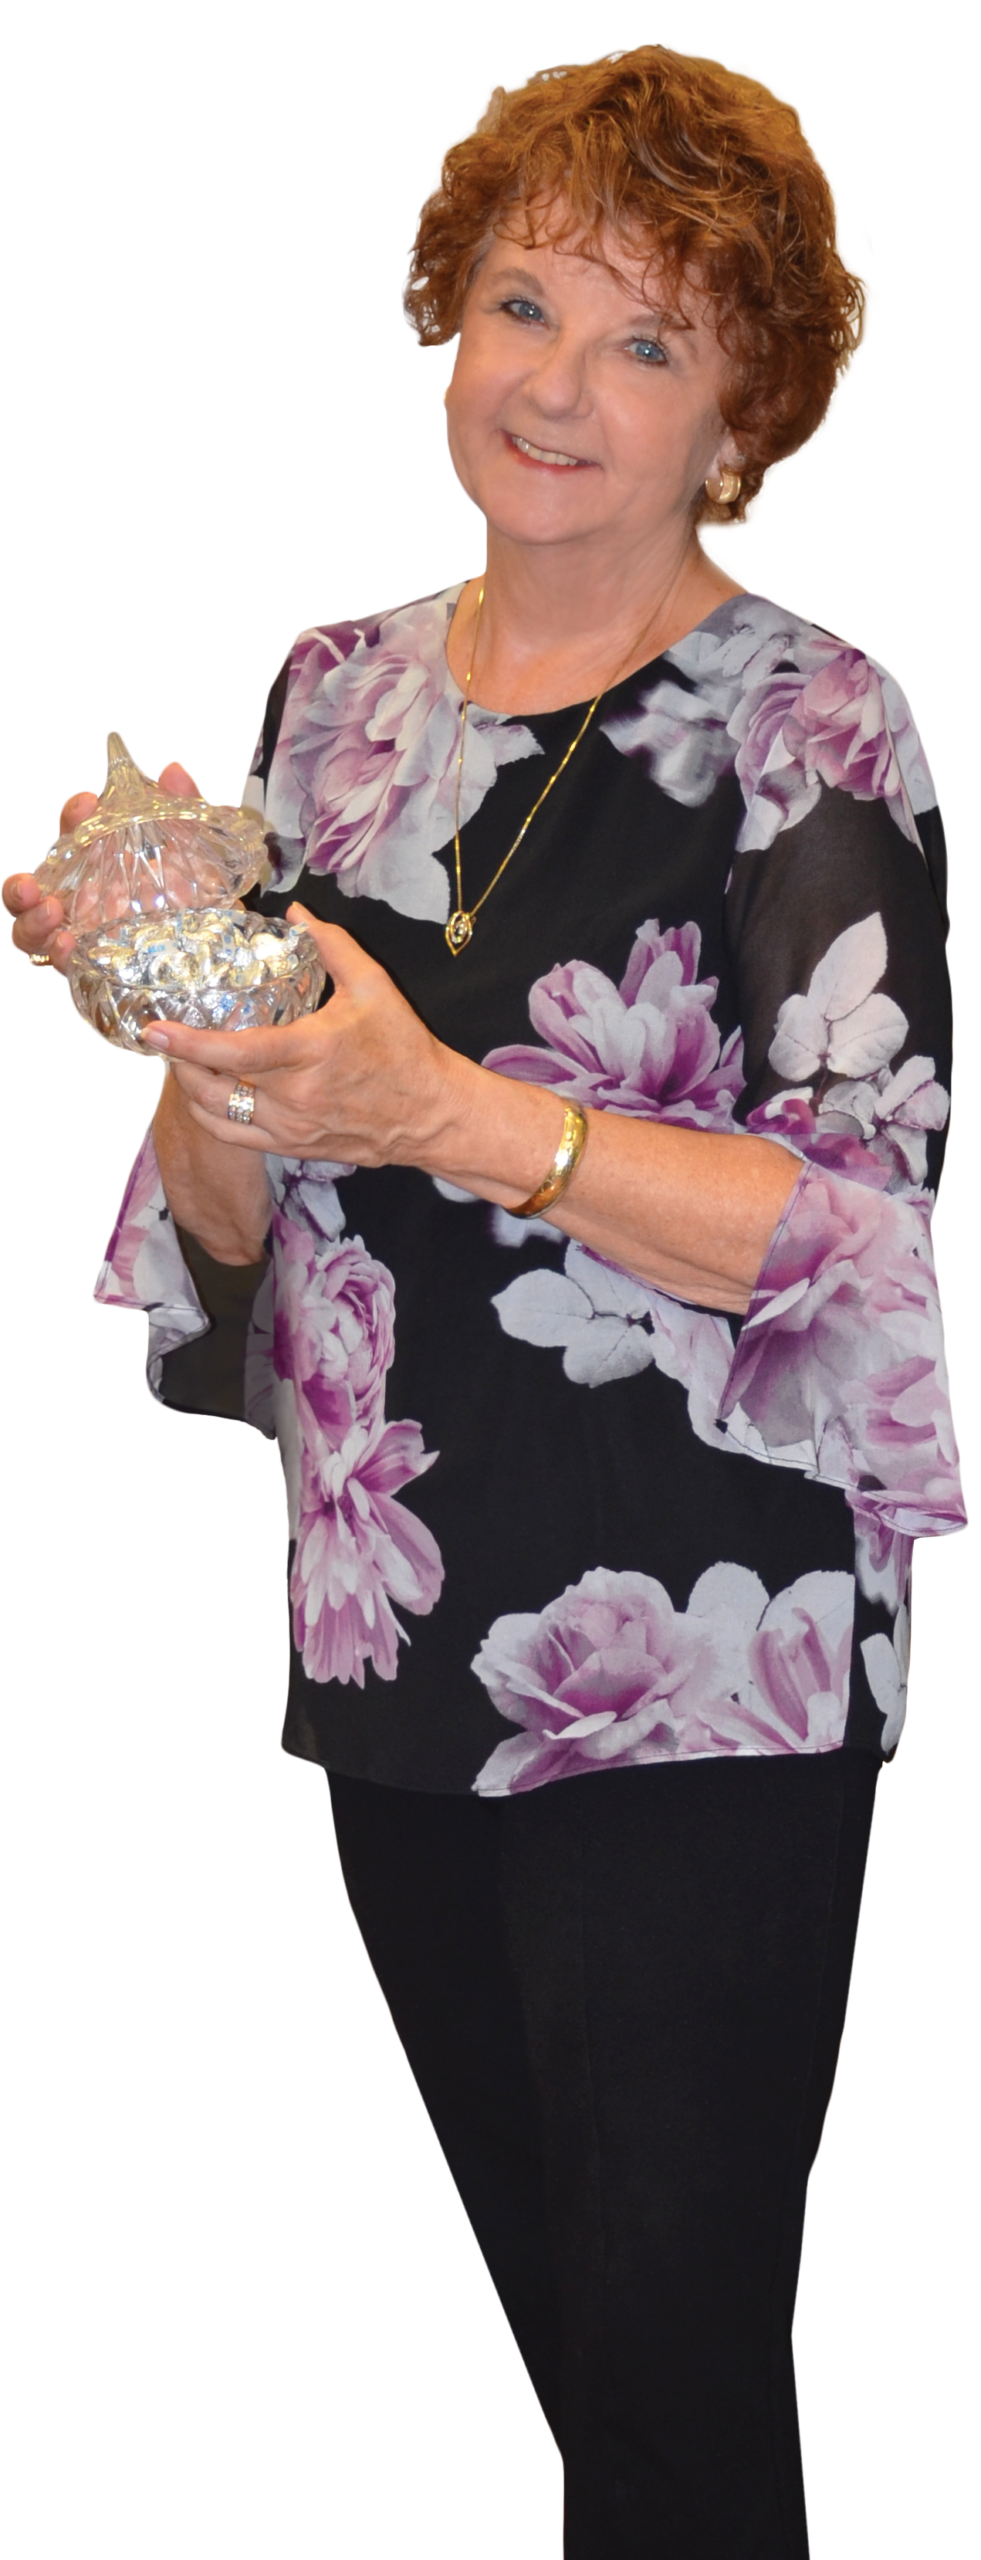 Margie holding a candy dish